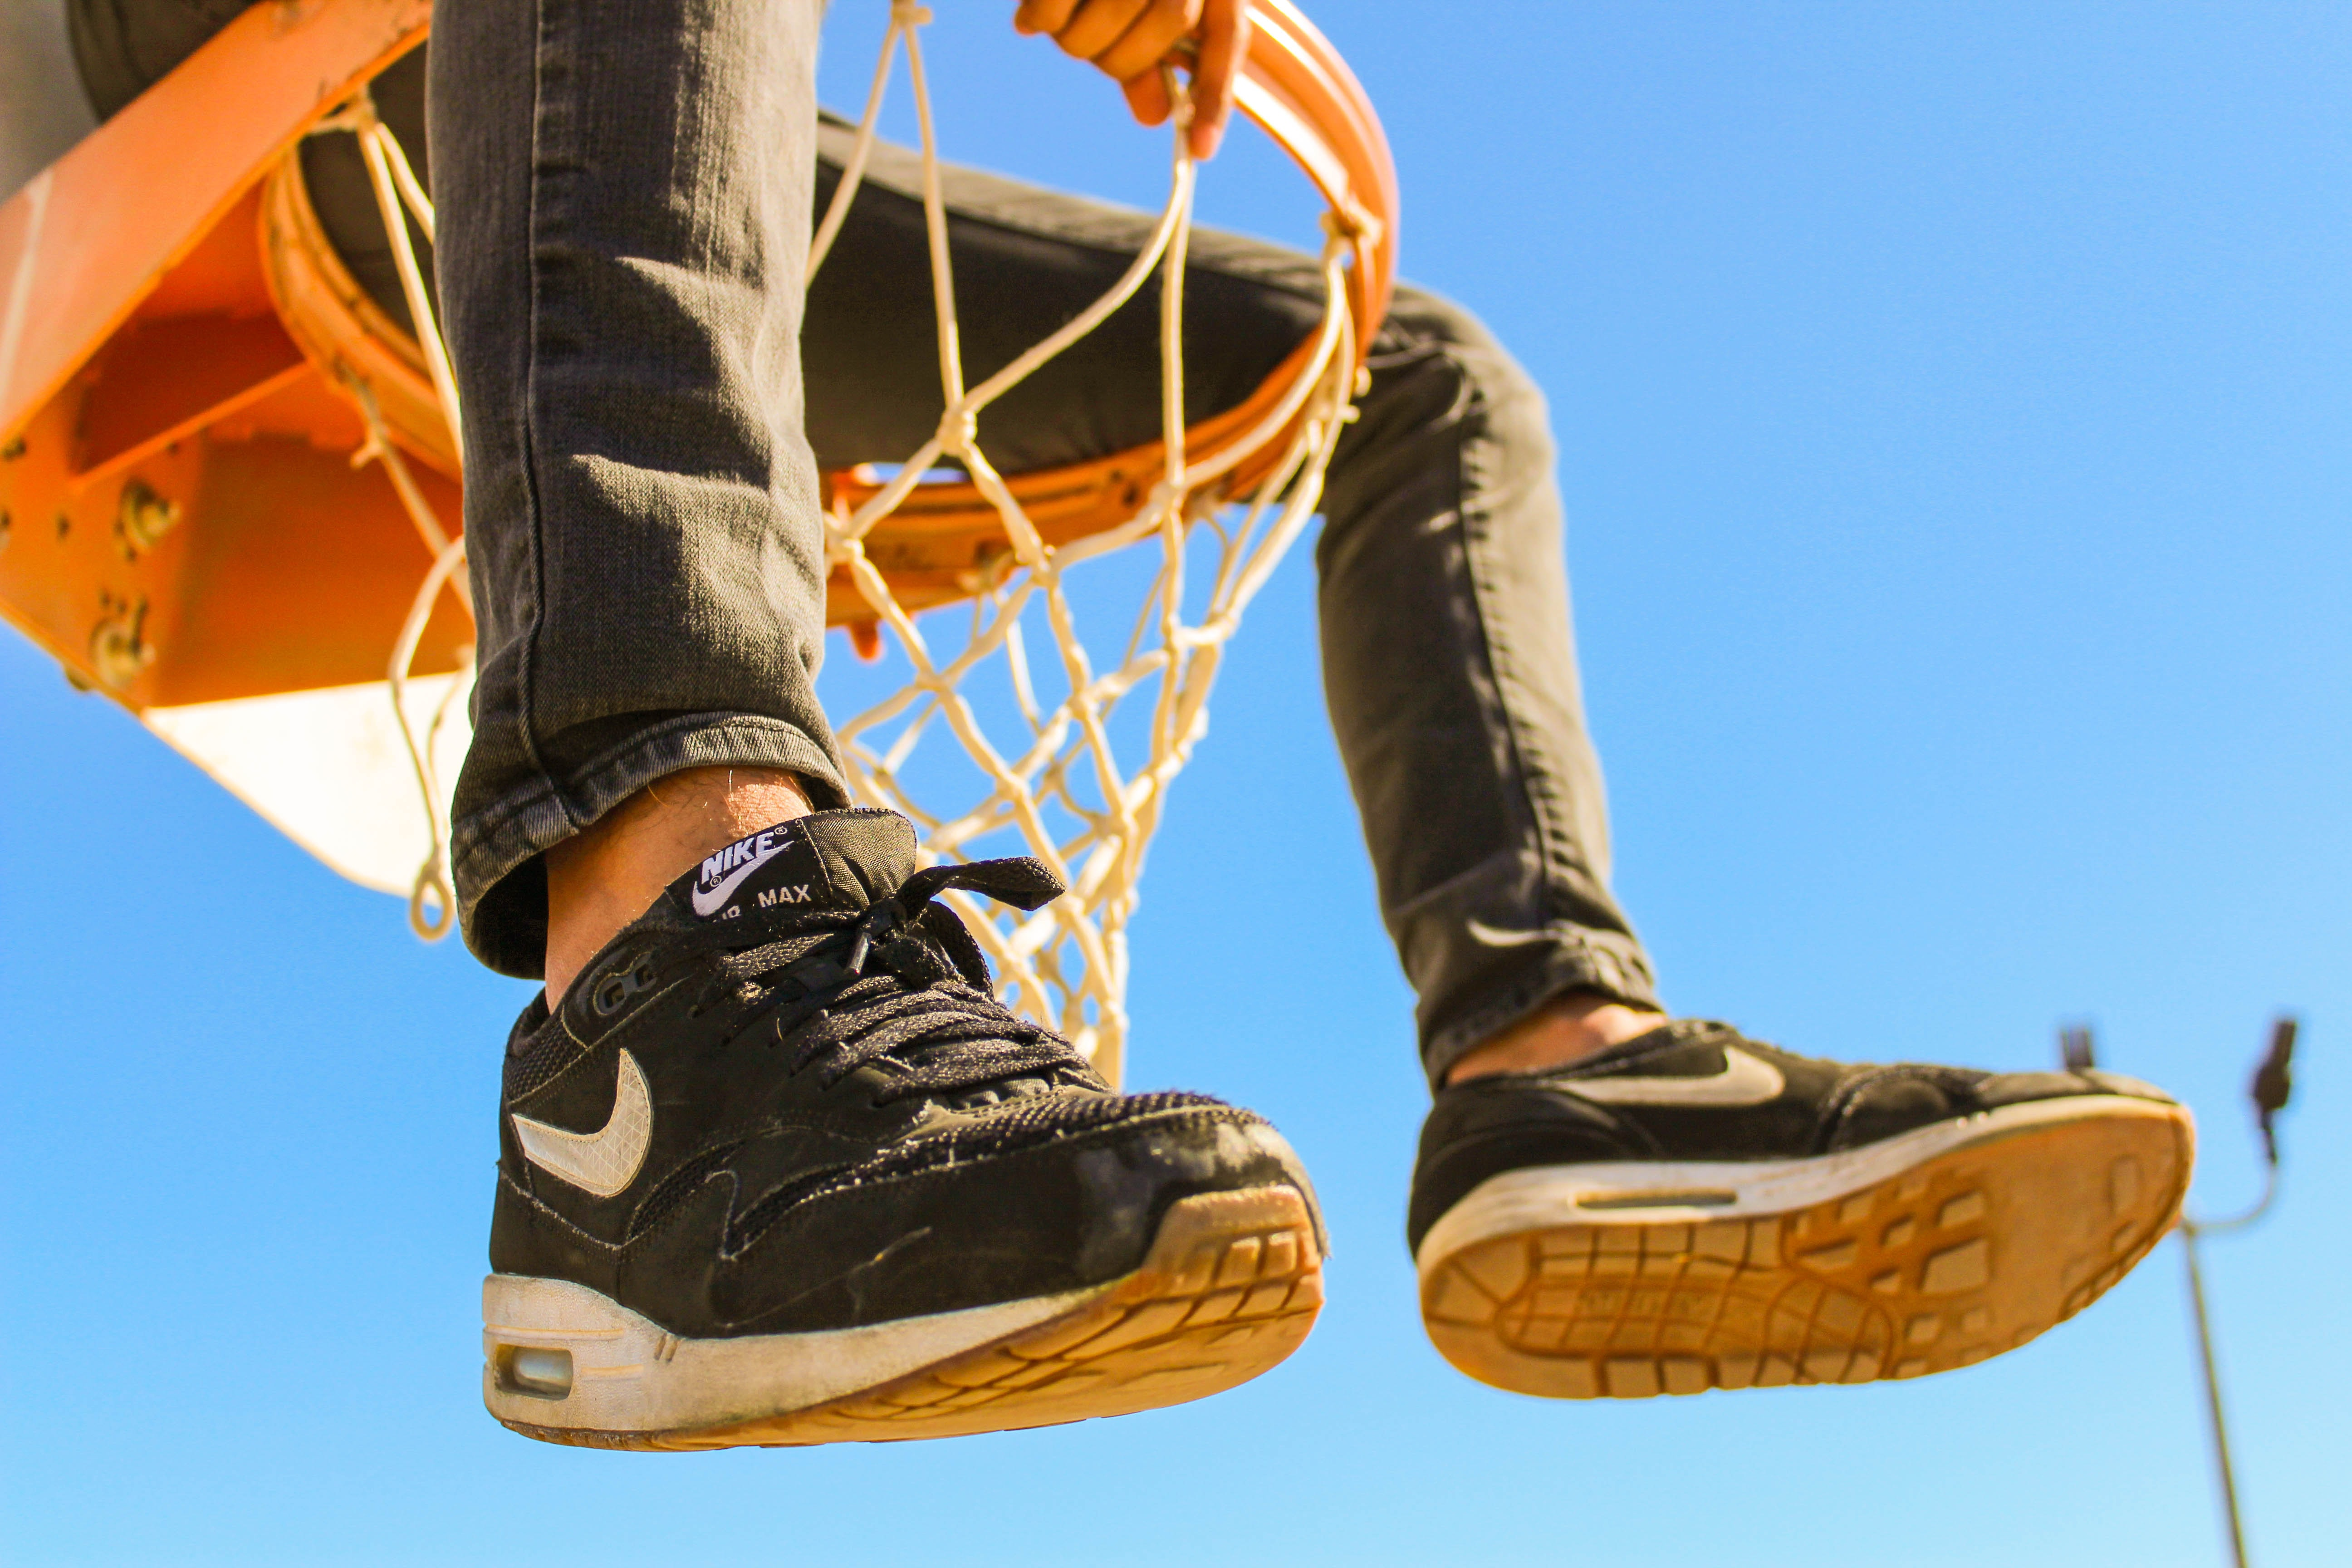 person sitting on basketball ringboard